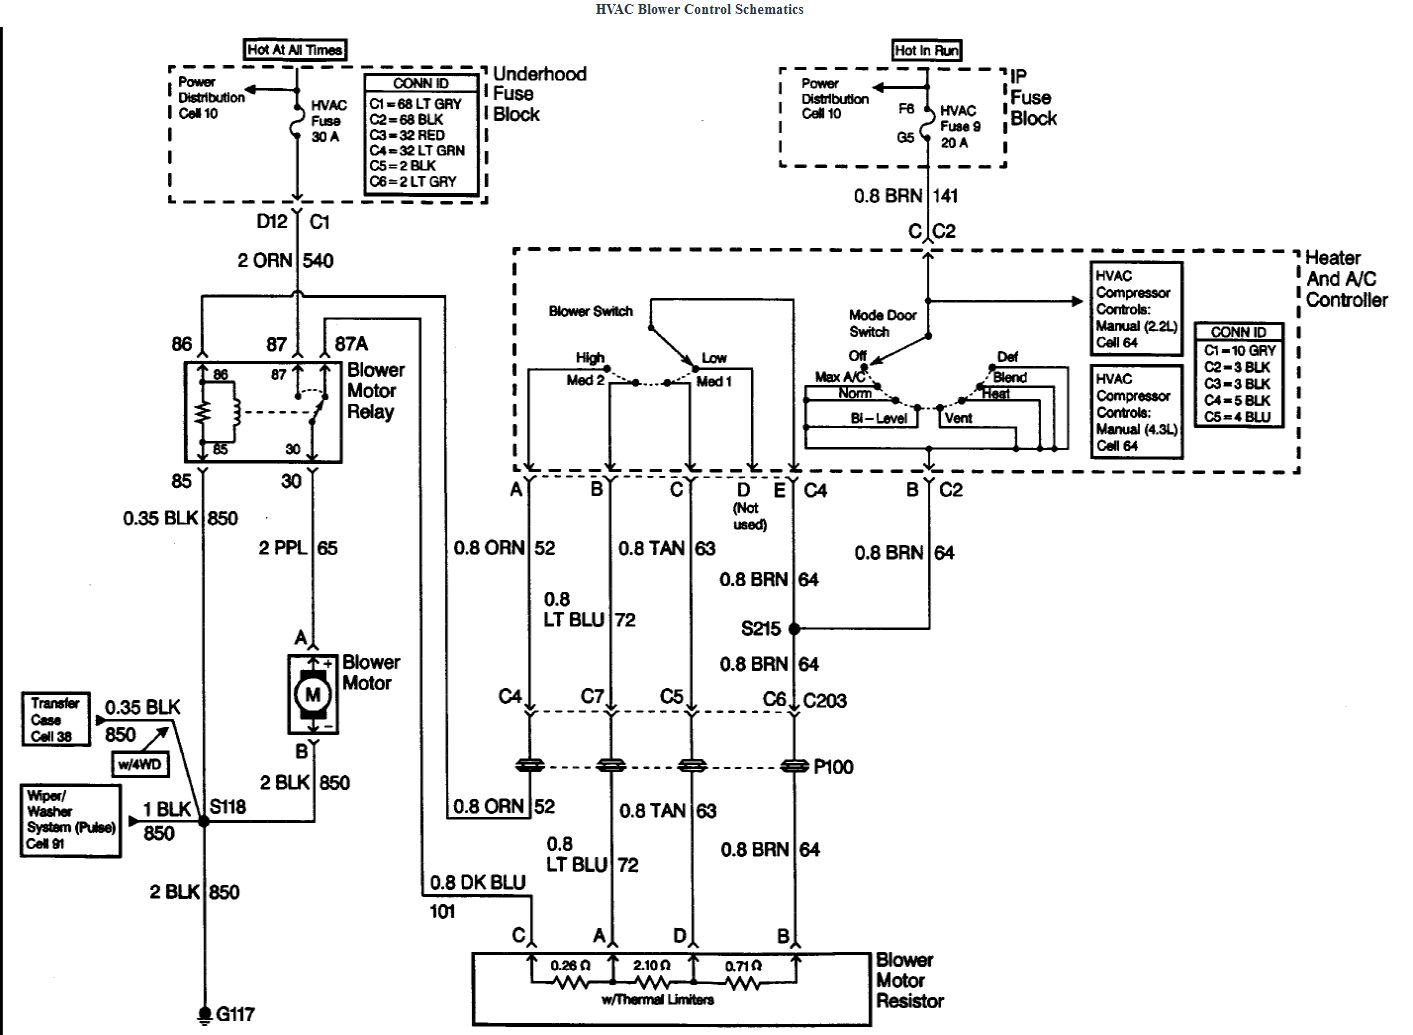 1994 Chevy Silverado Fuse Box Diagram. Chevy. Wiring